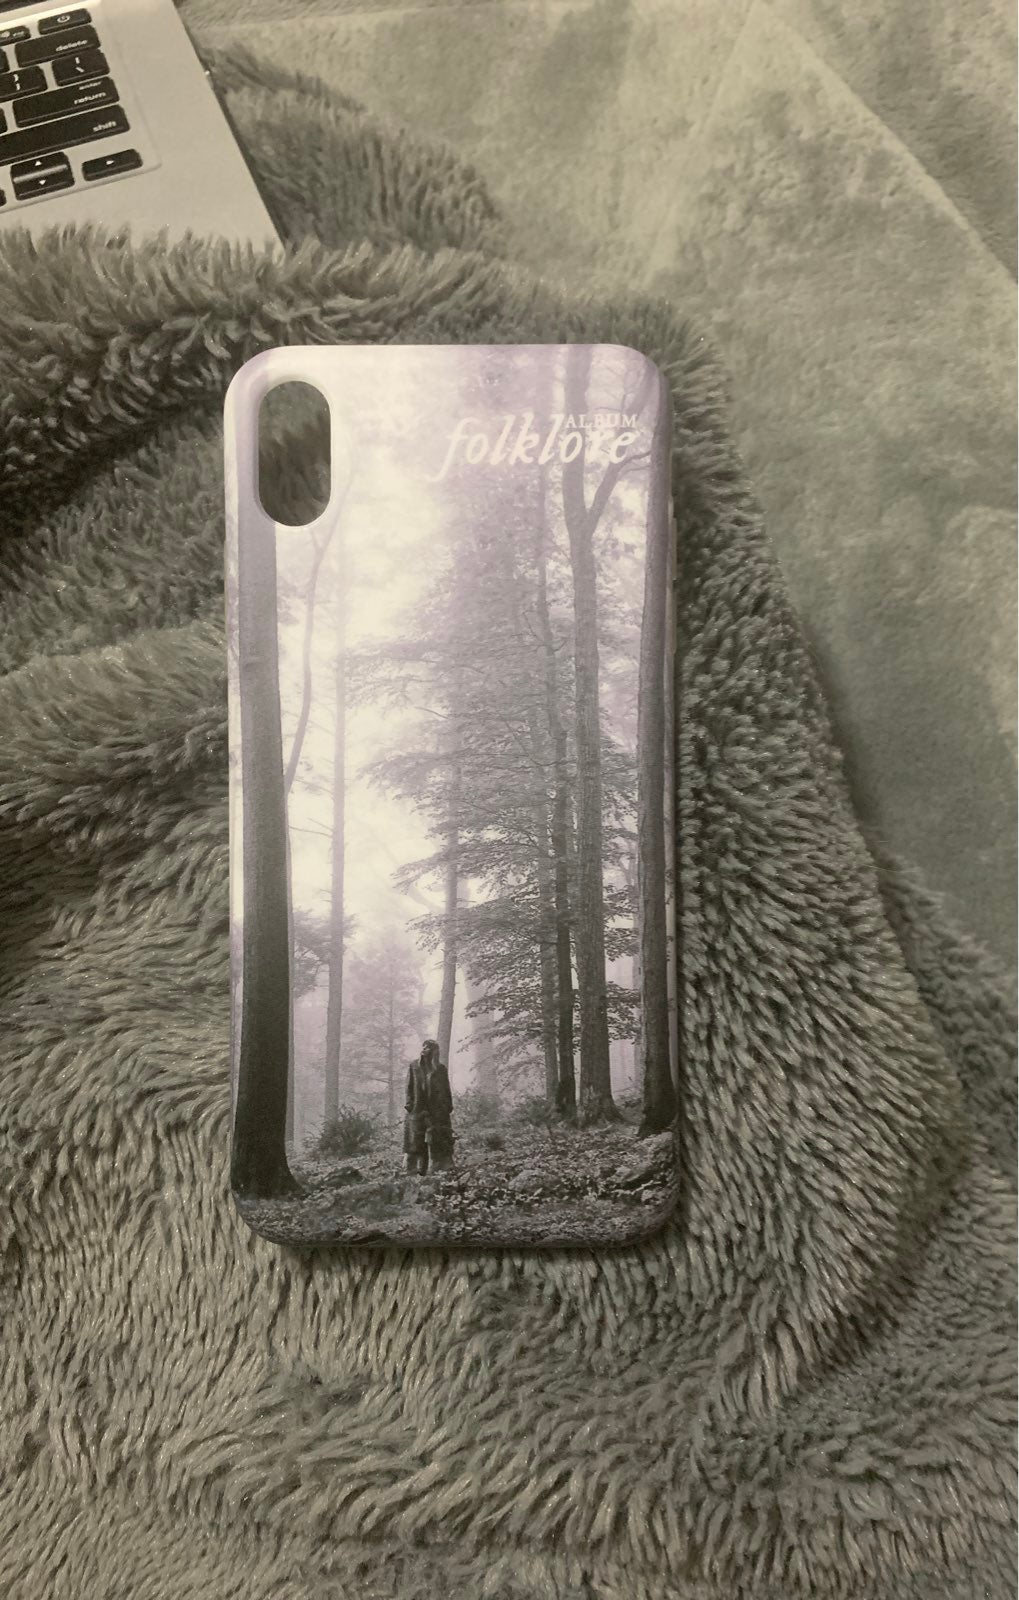 Folklore IPhone XS Max Phone Case